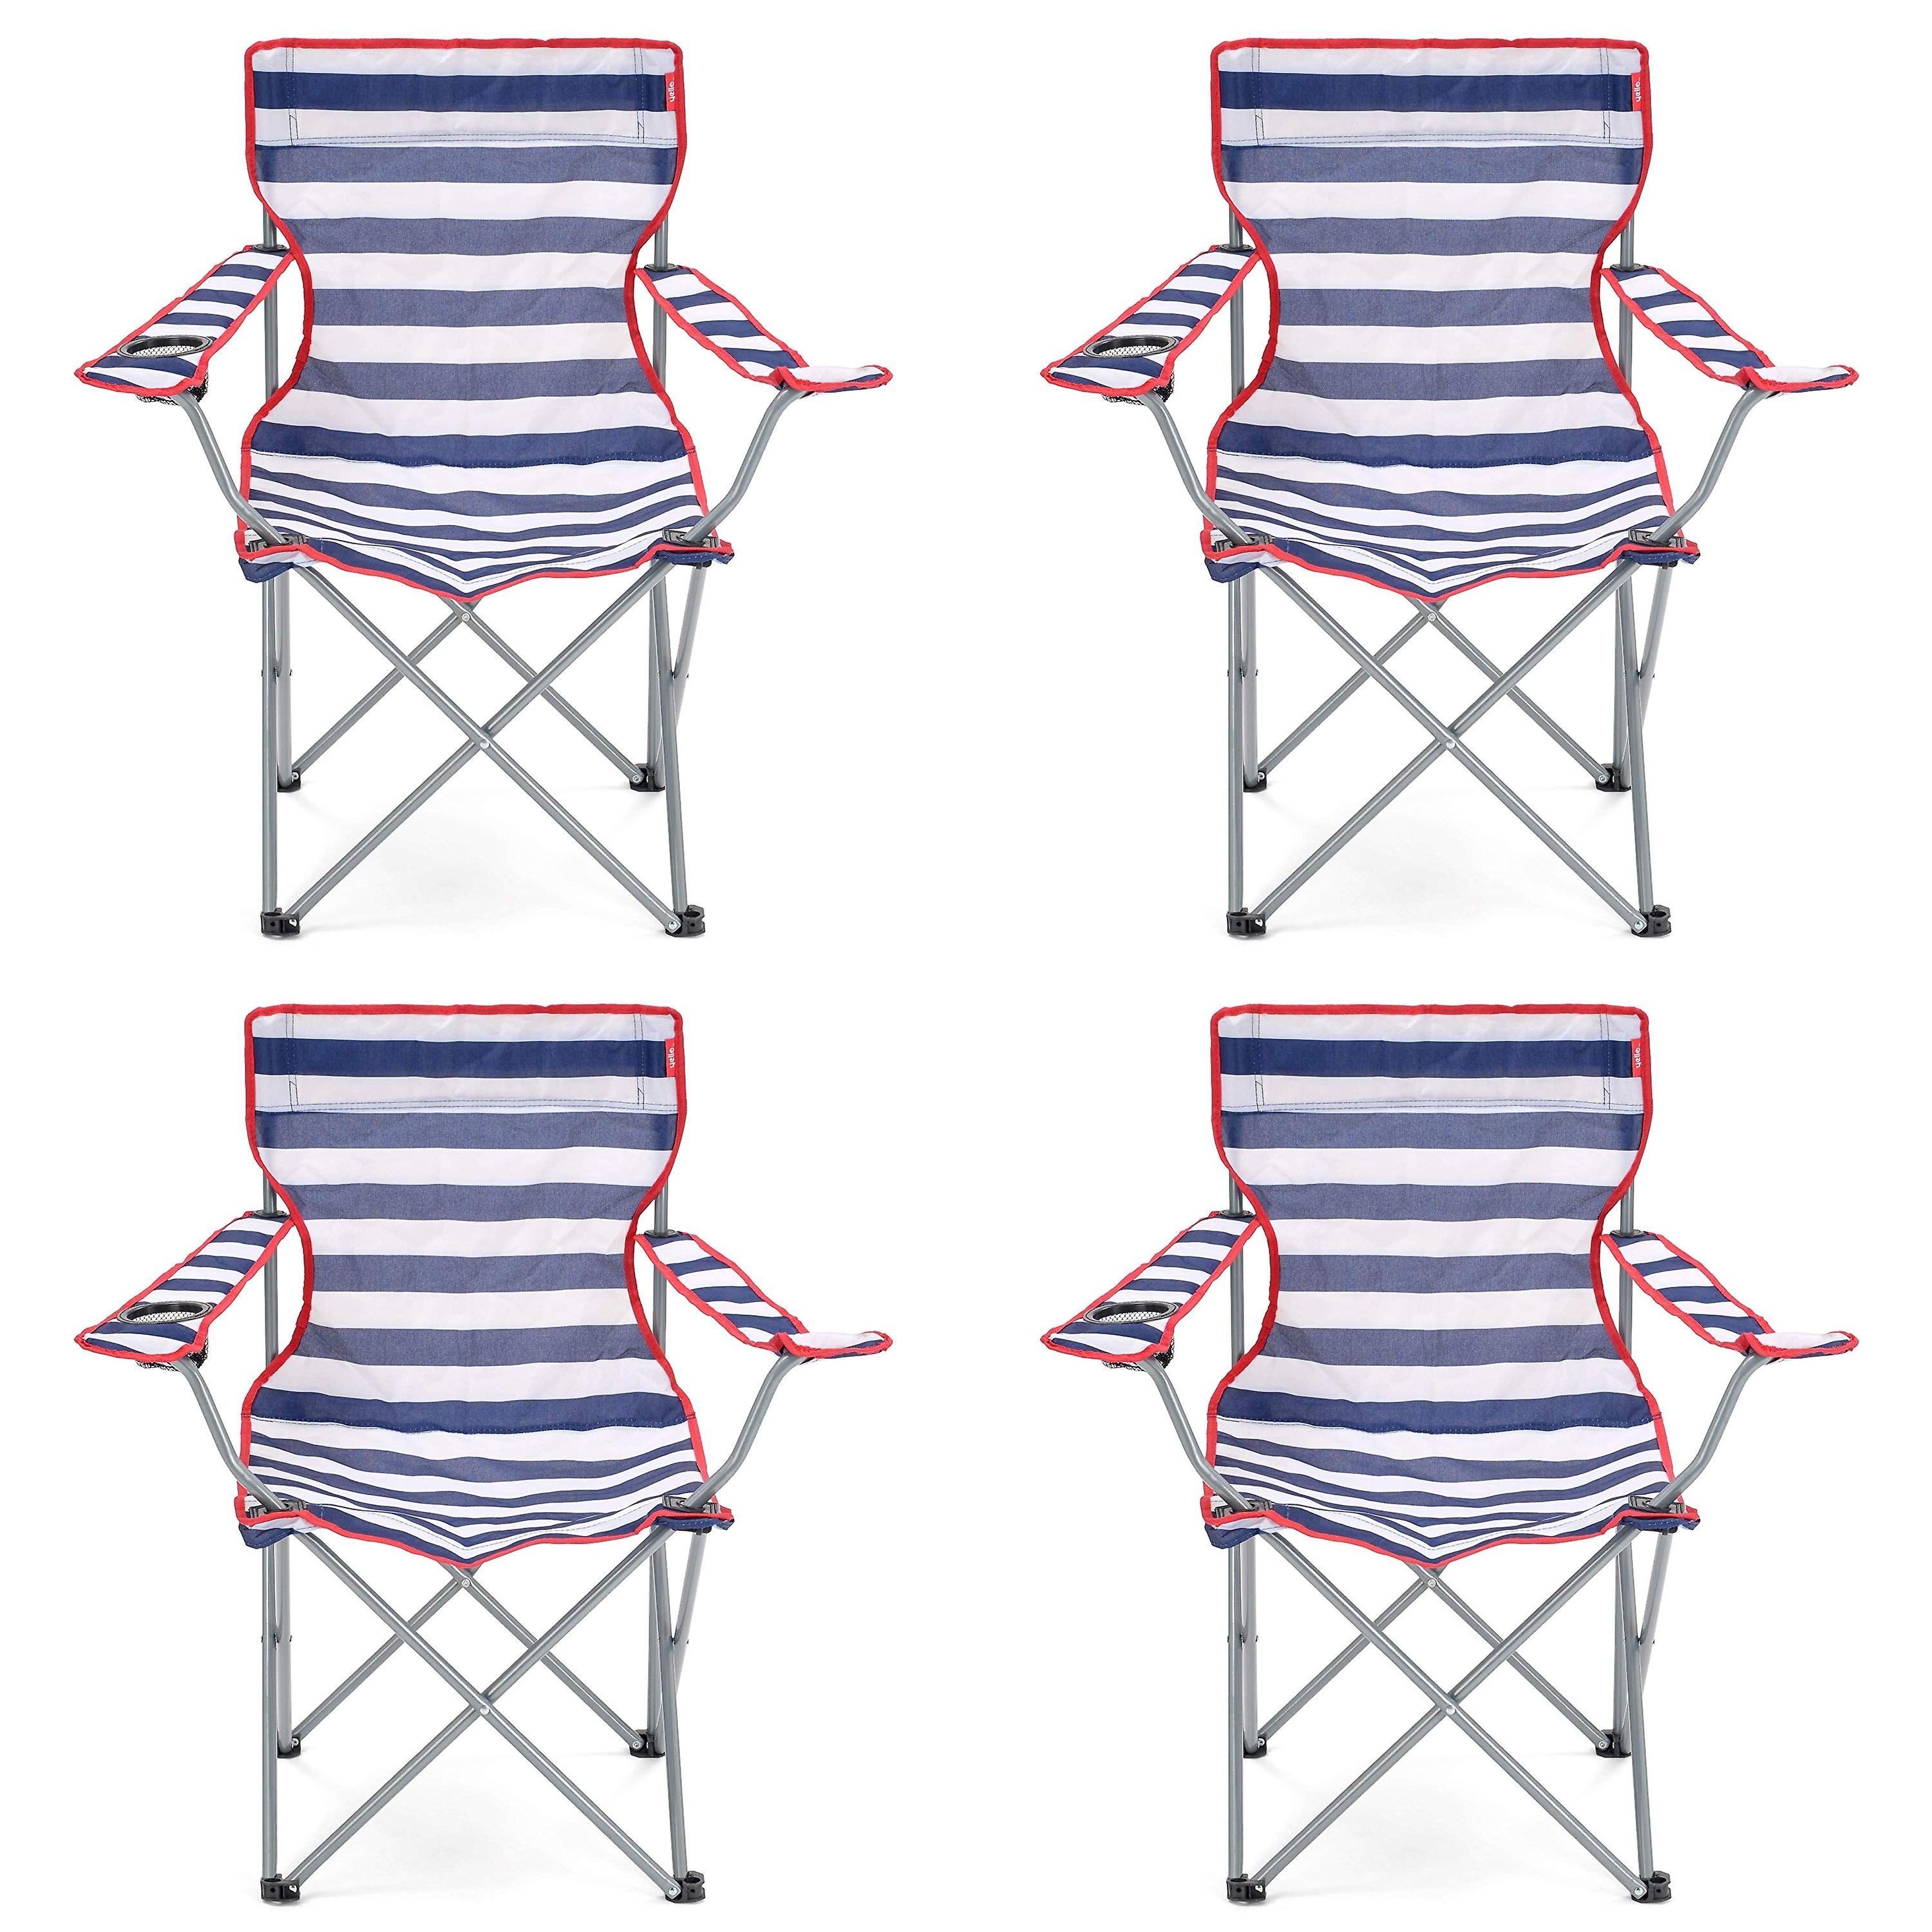 Swell 4 Yello Folding Beach Chairs For Camping Fishing Or Beach Striped Blue White Caraccident5 Cool Chair Designs And Ideas Caraccident5Info